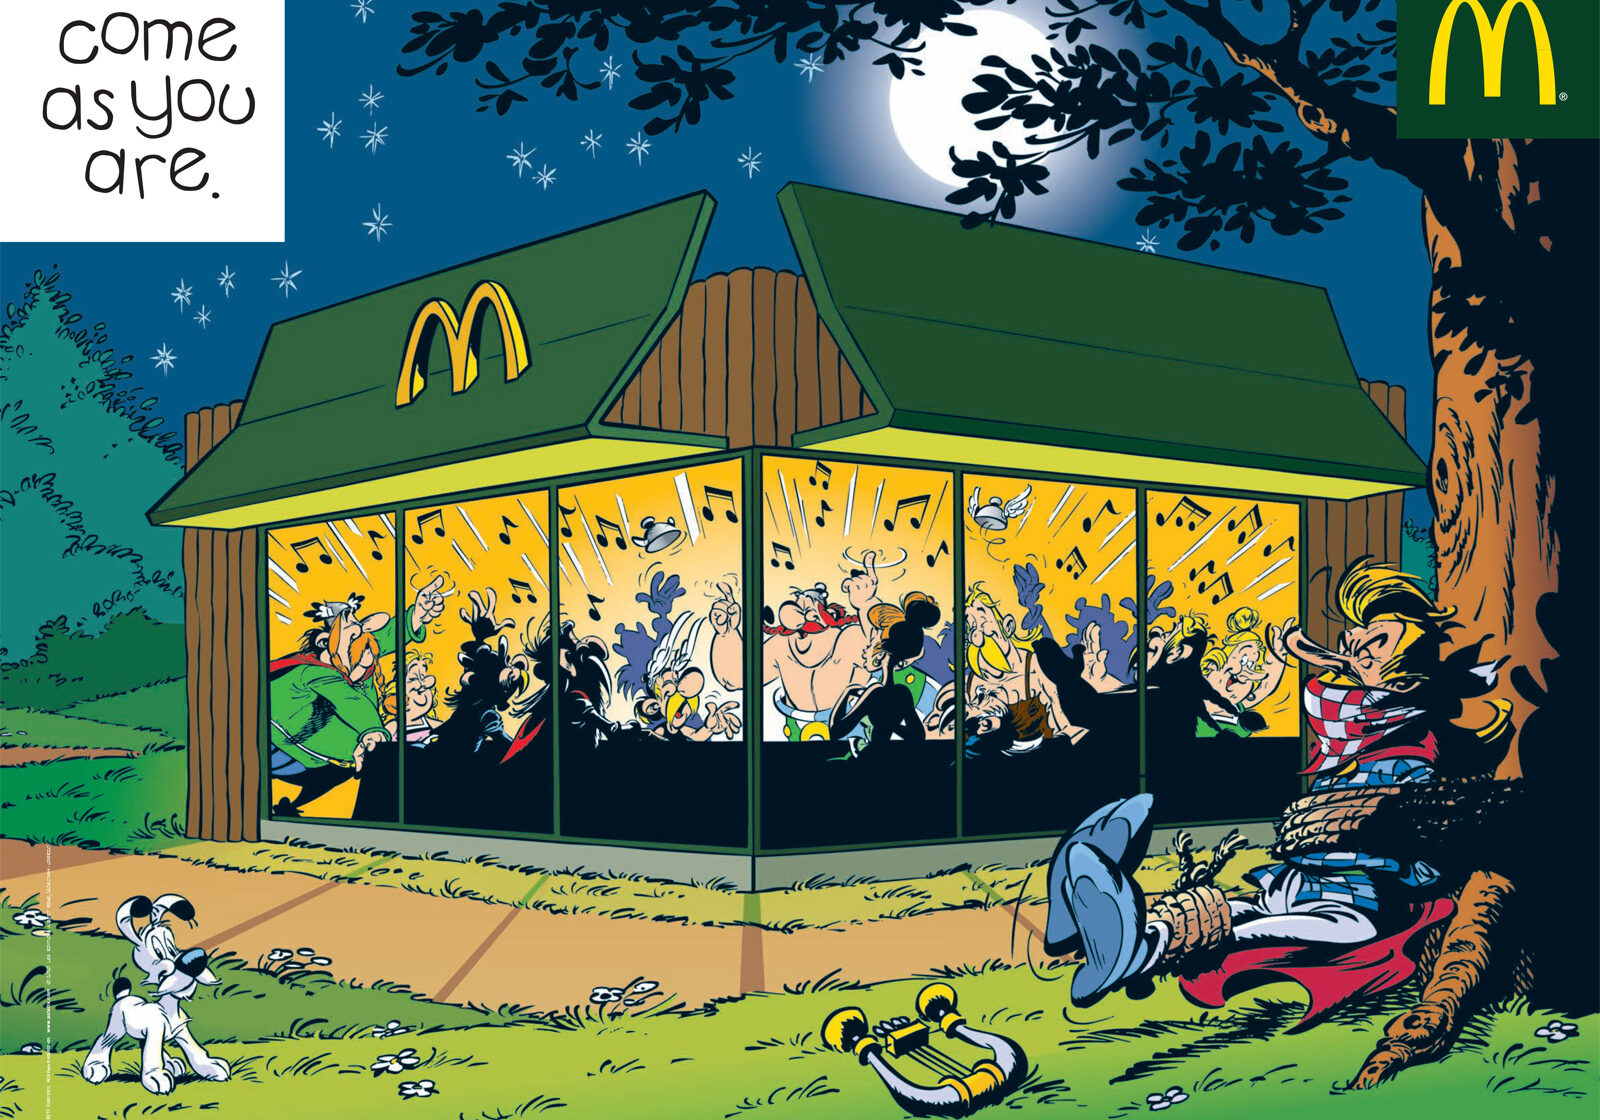 McDonalds-Asterix